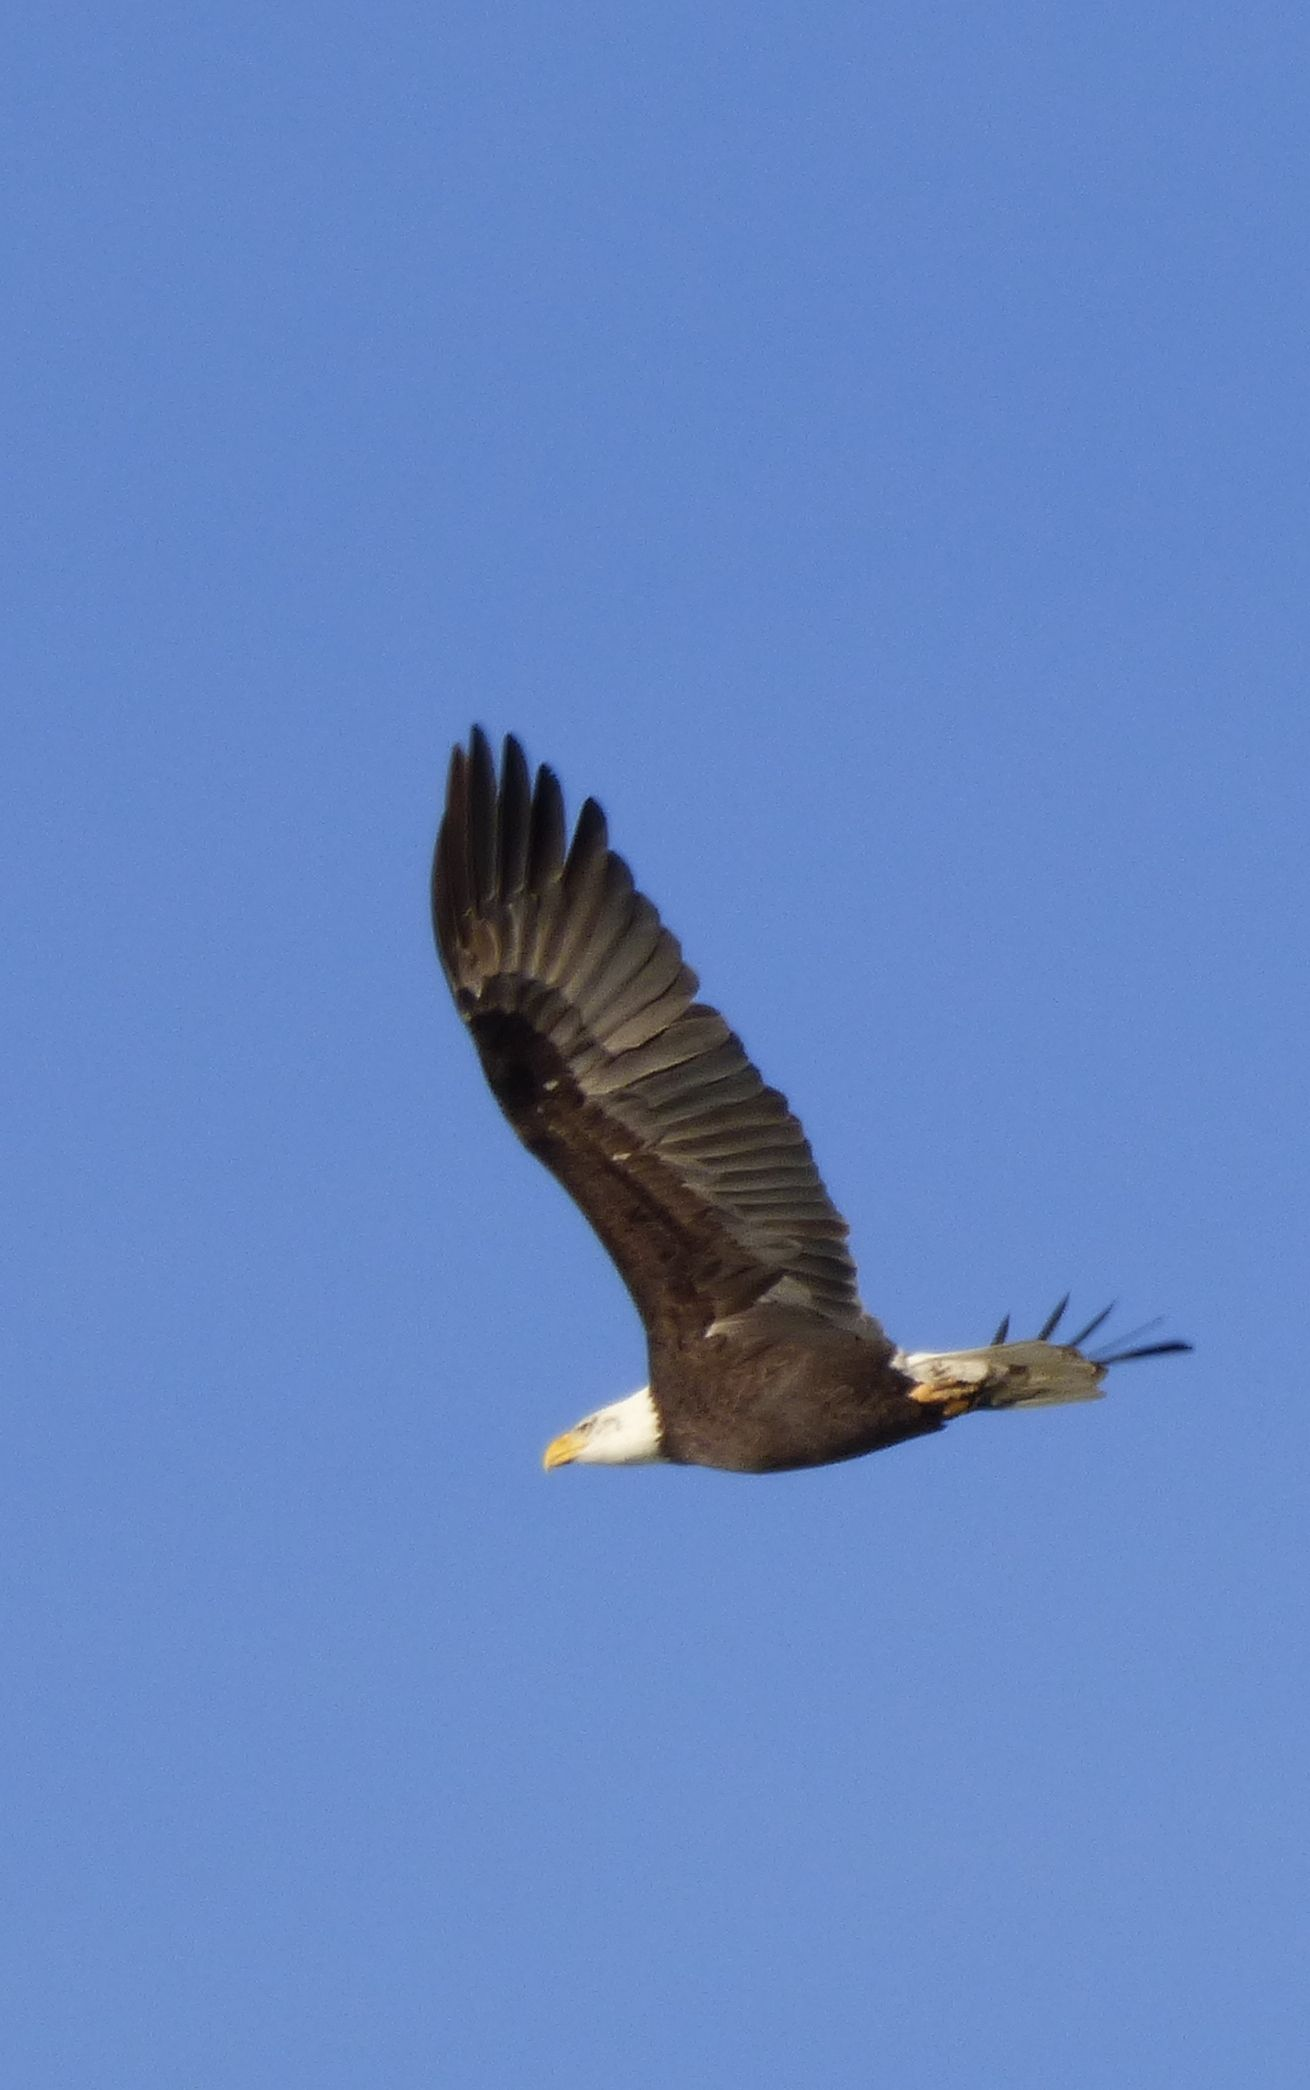 One of many Bald Eagle flying over the Nisqually National